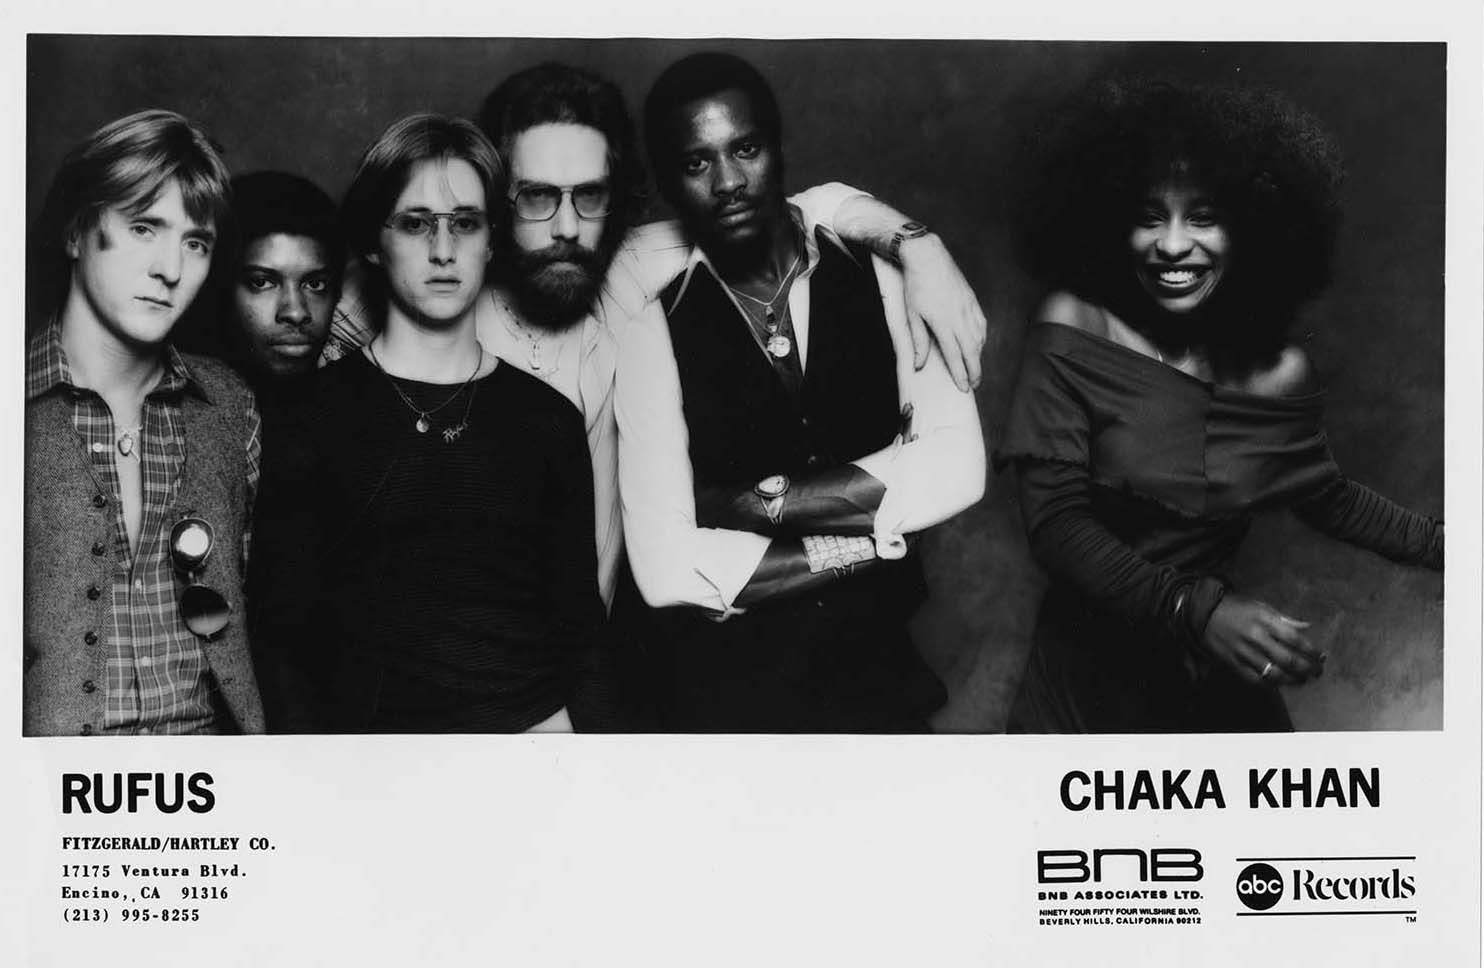 Promo photo of Rufus and Chaka Khan